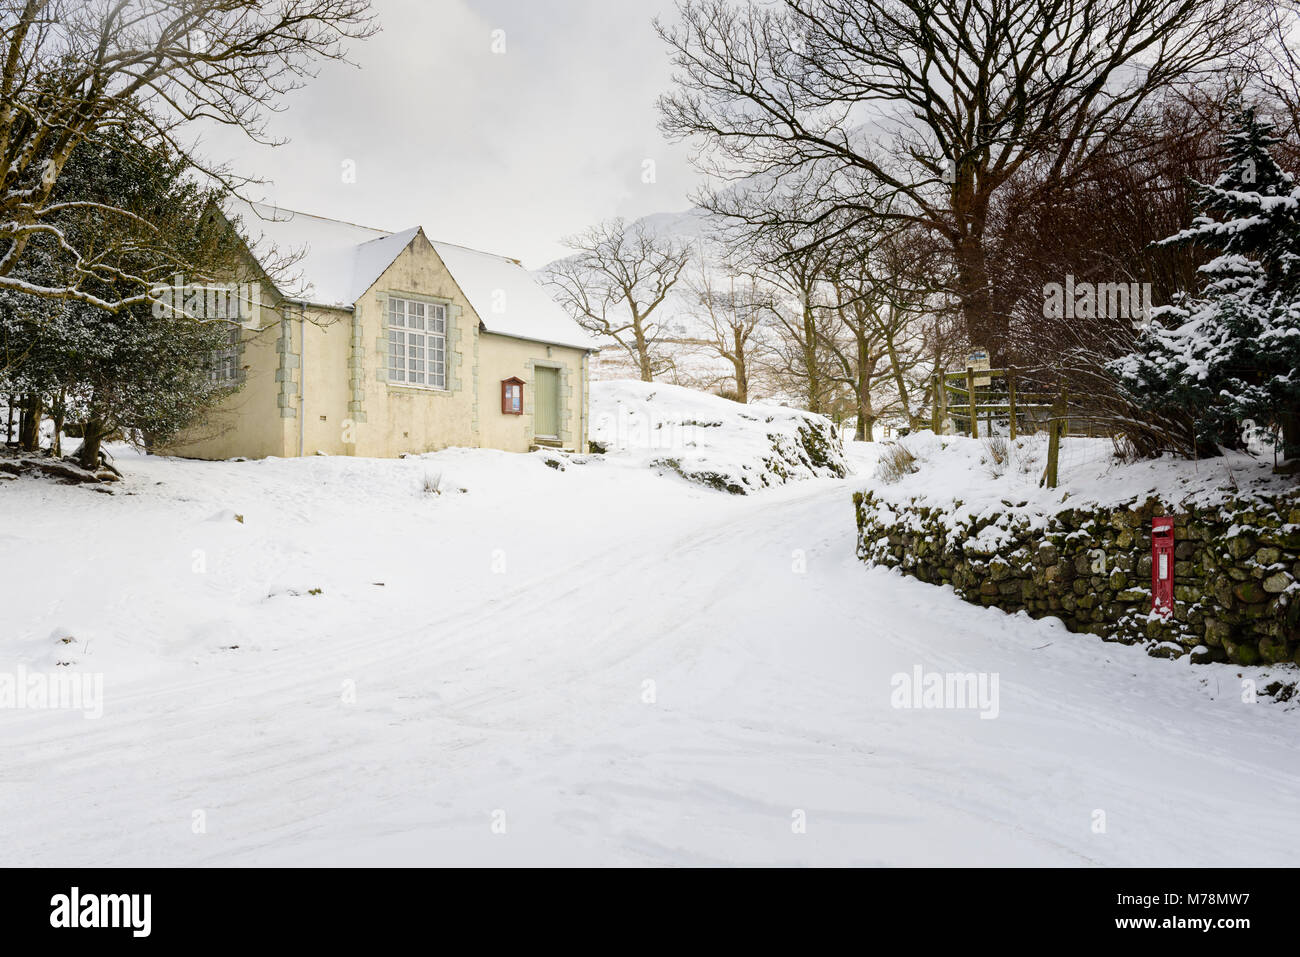 Winter snow covered road past the the Old School Room, now the Village Hall in Buttermere in the English Lake District - Stock Image